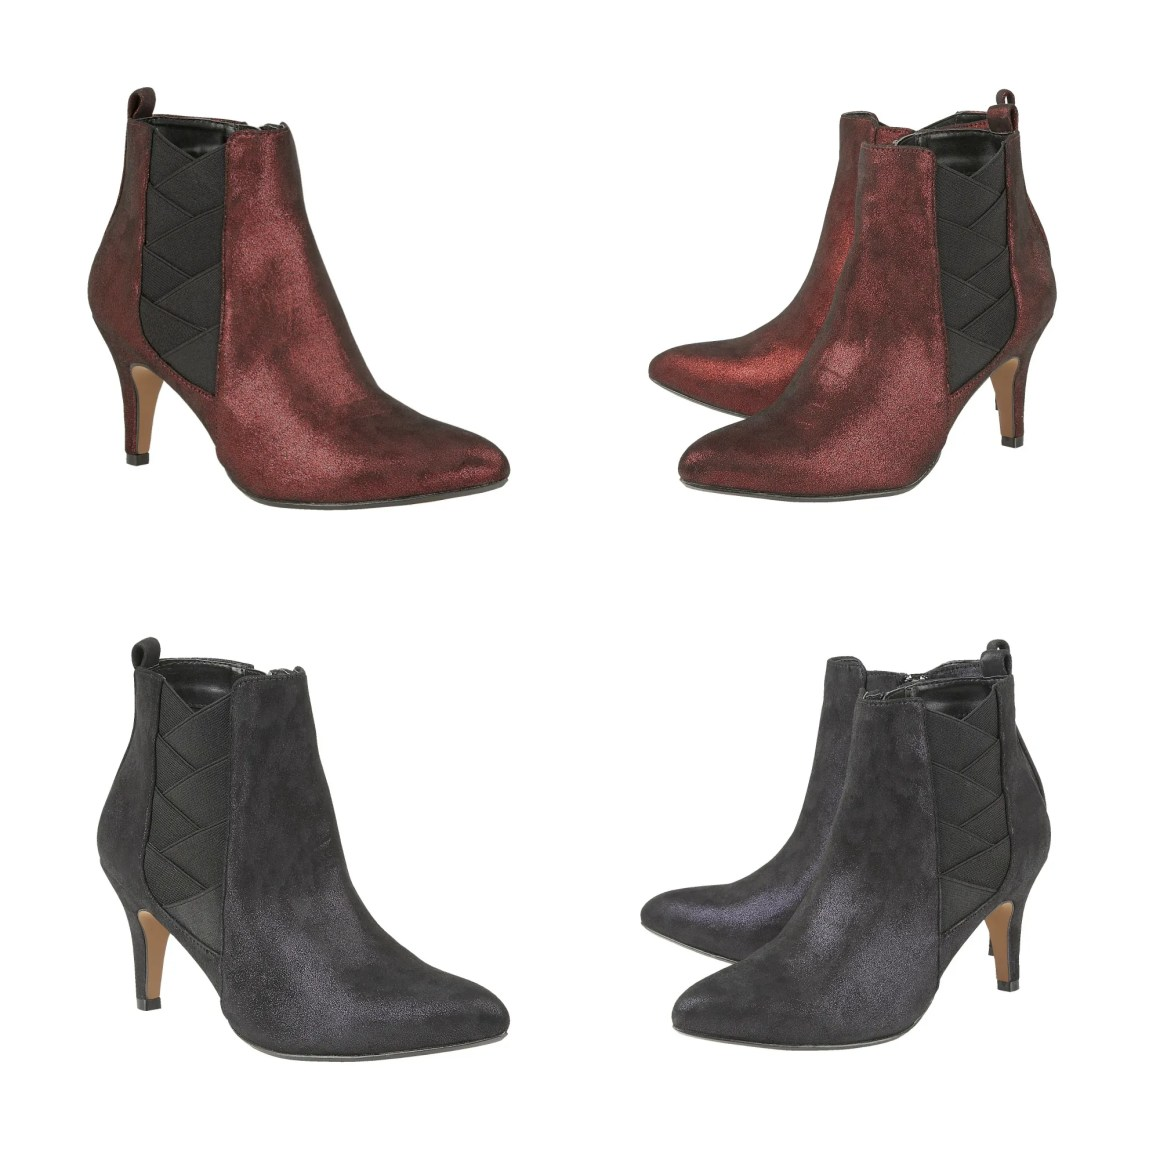 what-lizzy-loves-how-to-style-high-heeled-ankle-boots-burgundy-black-Booney-lotus